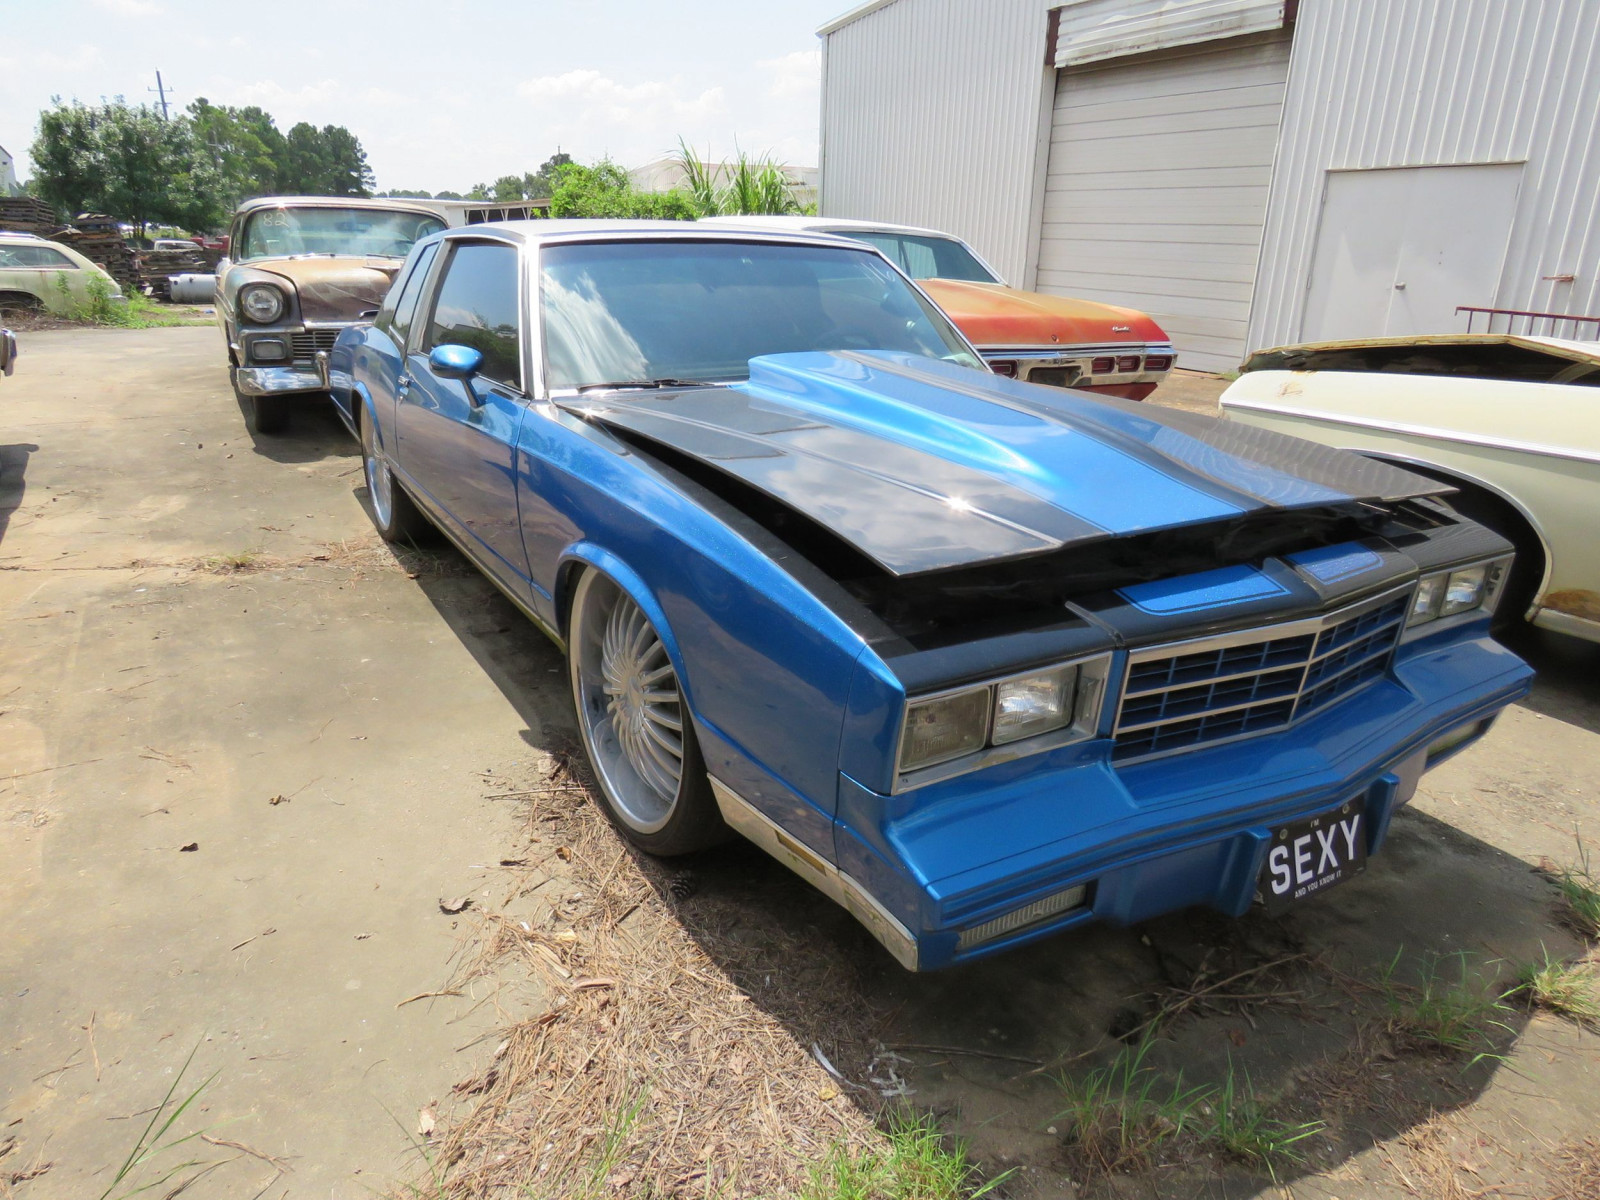 1984 Chevrolet Monte Carlo Custom Project - Image 2